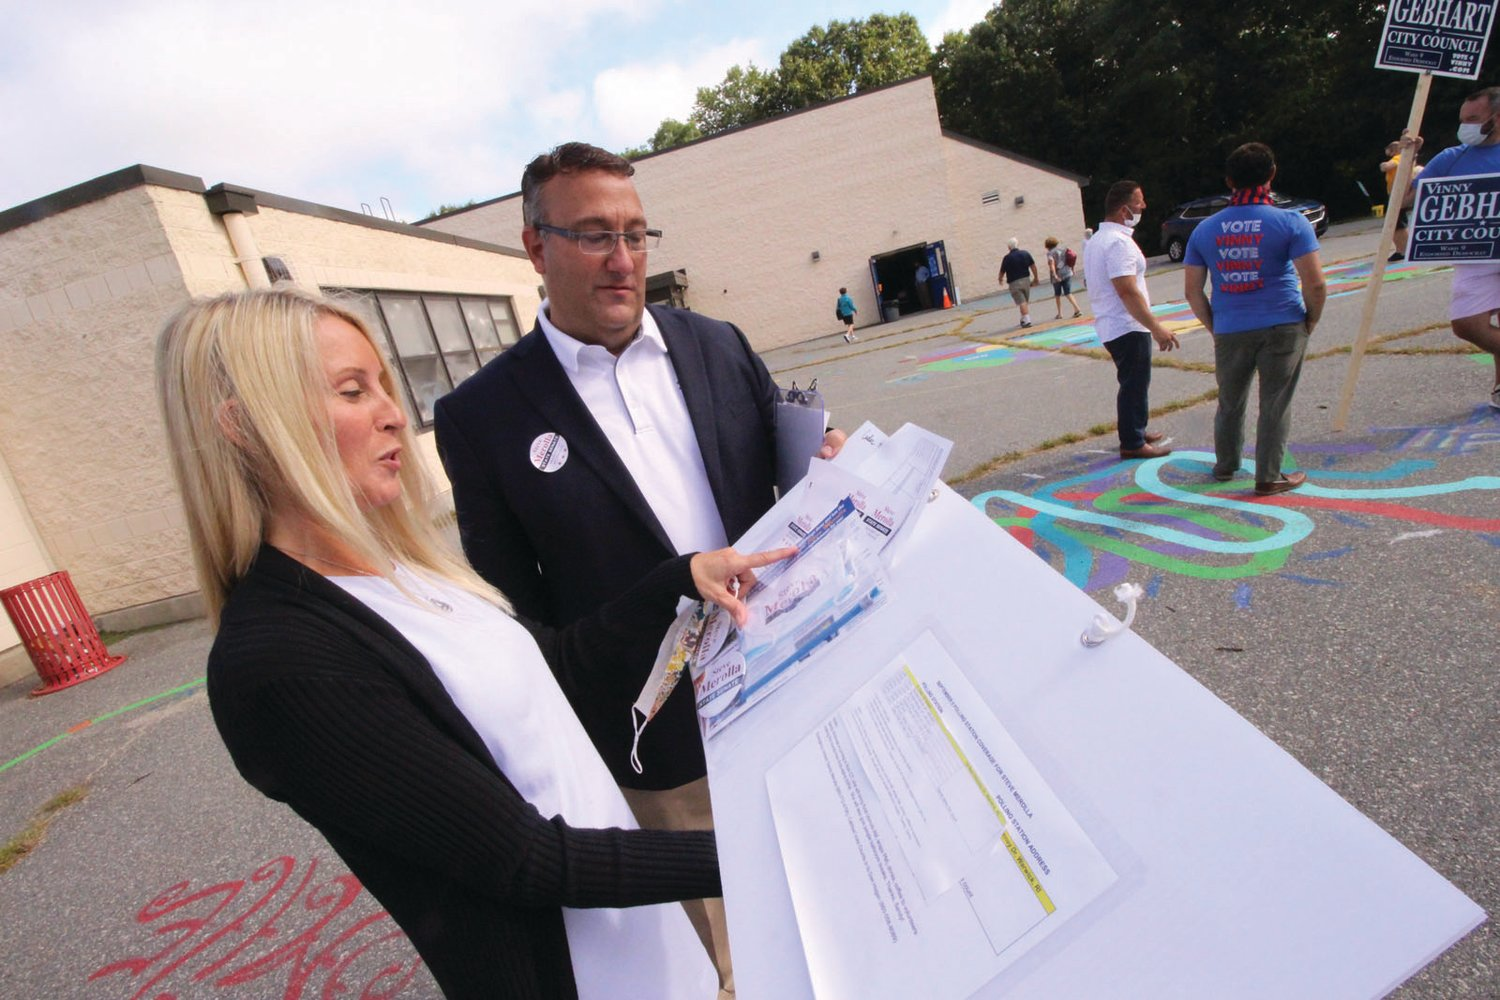 THE GAME PLAN: Michelle Merolla made double use of the sign she held in support of her husband, Steve Merolla. She had made pockets for a listing of polling locations as well as information if voters requested it. She and Steve are pictured outside Cedar Hill School.